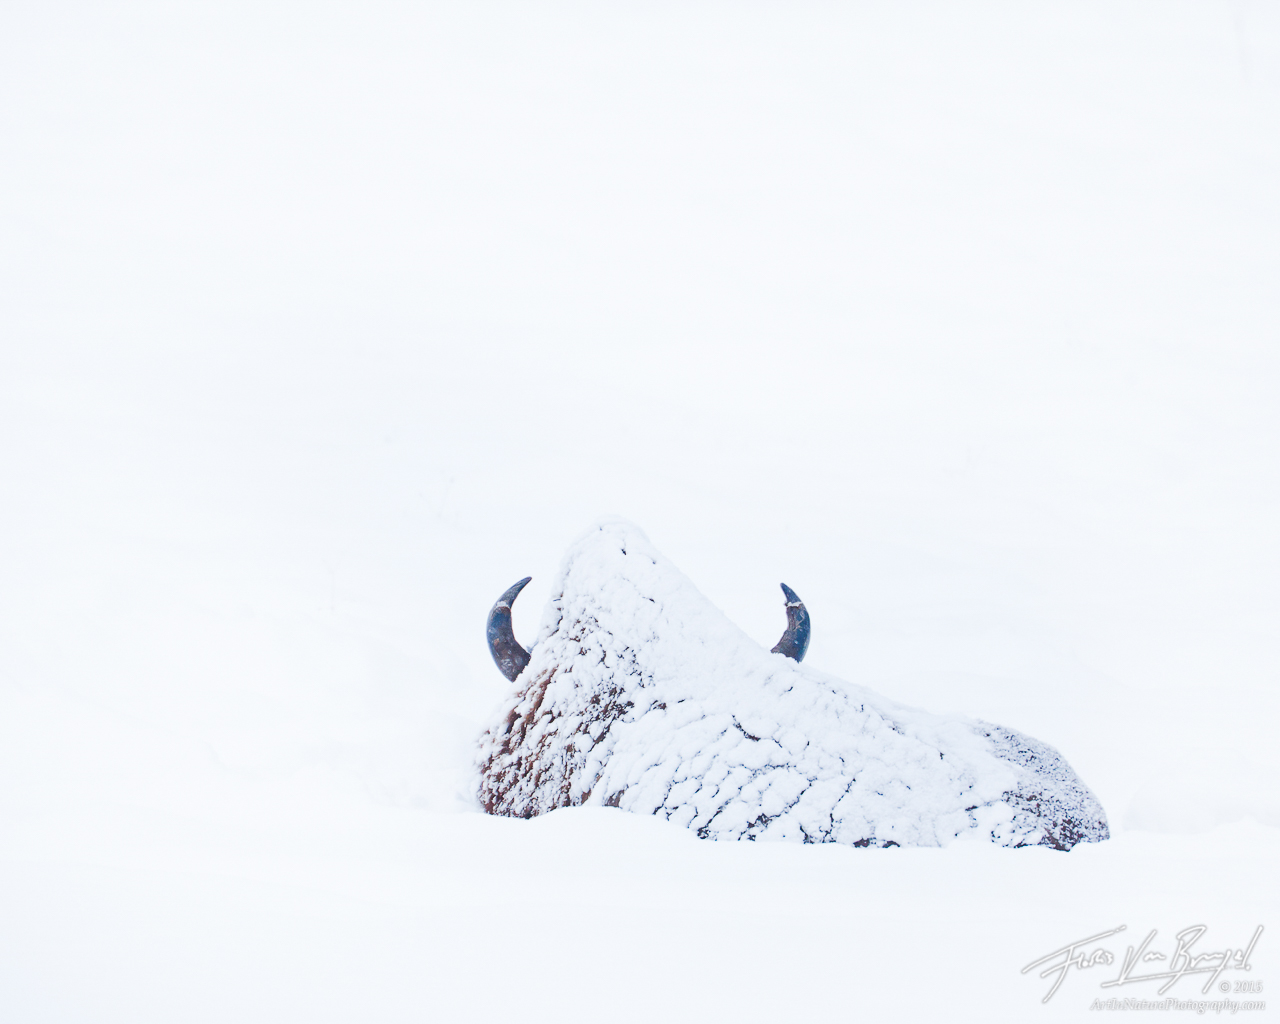 Bison in Snow, Lamar Valley, Yellowstone National Park, photo